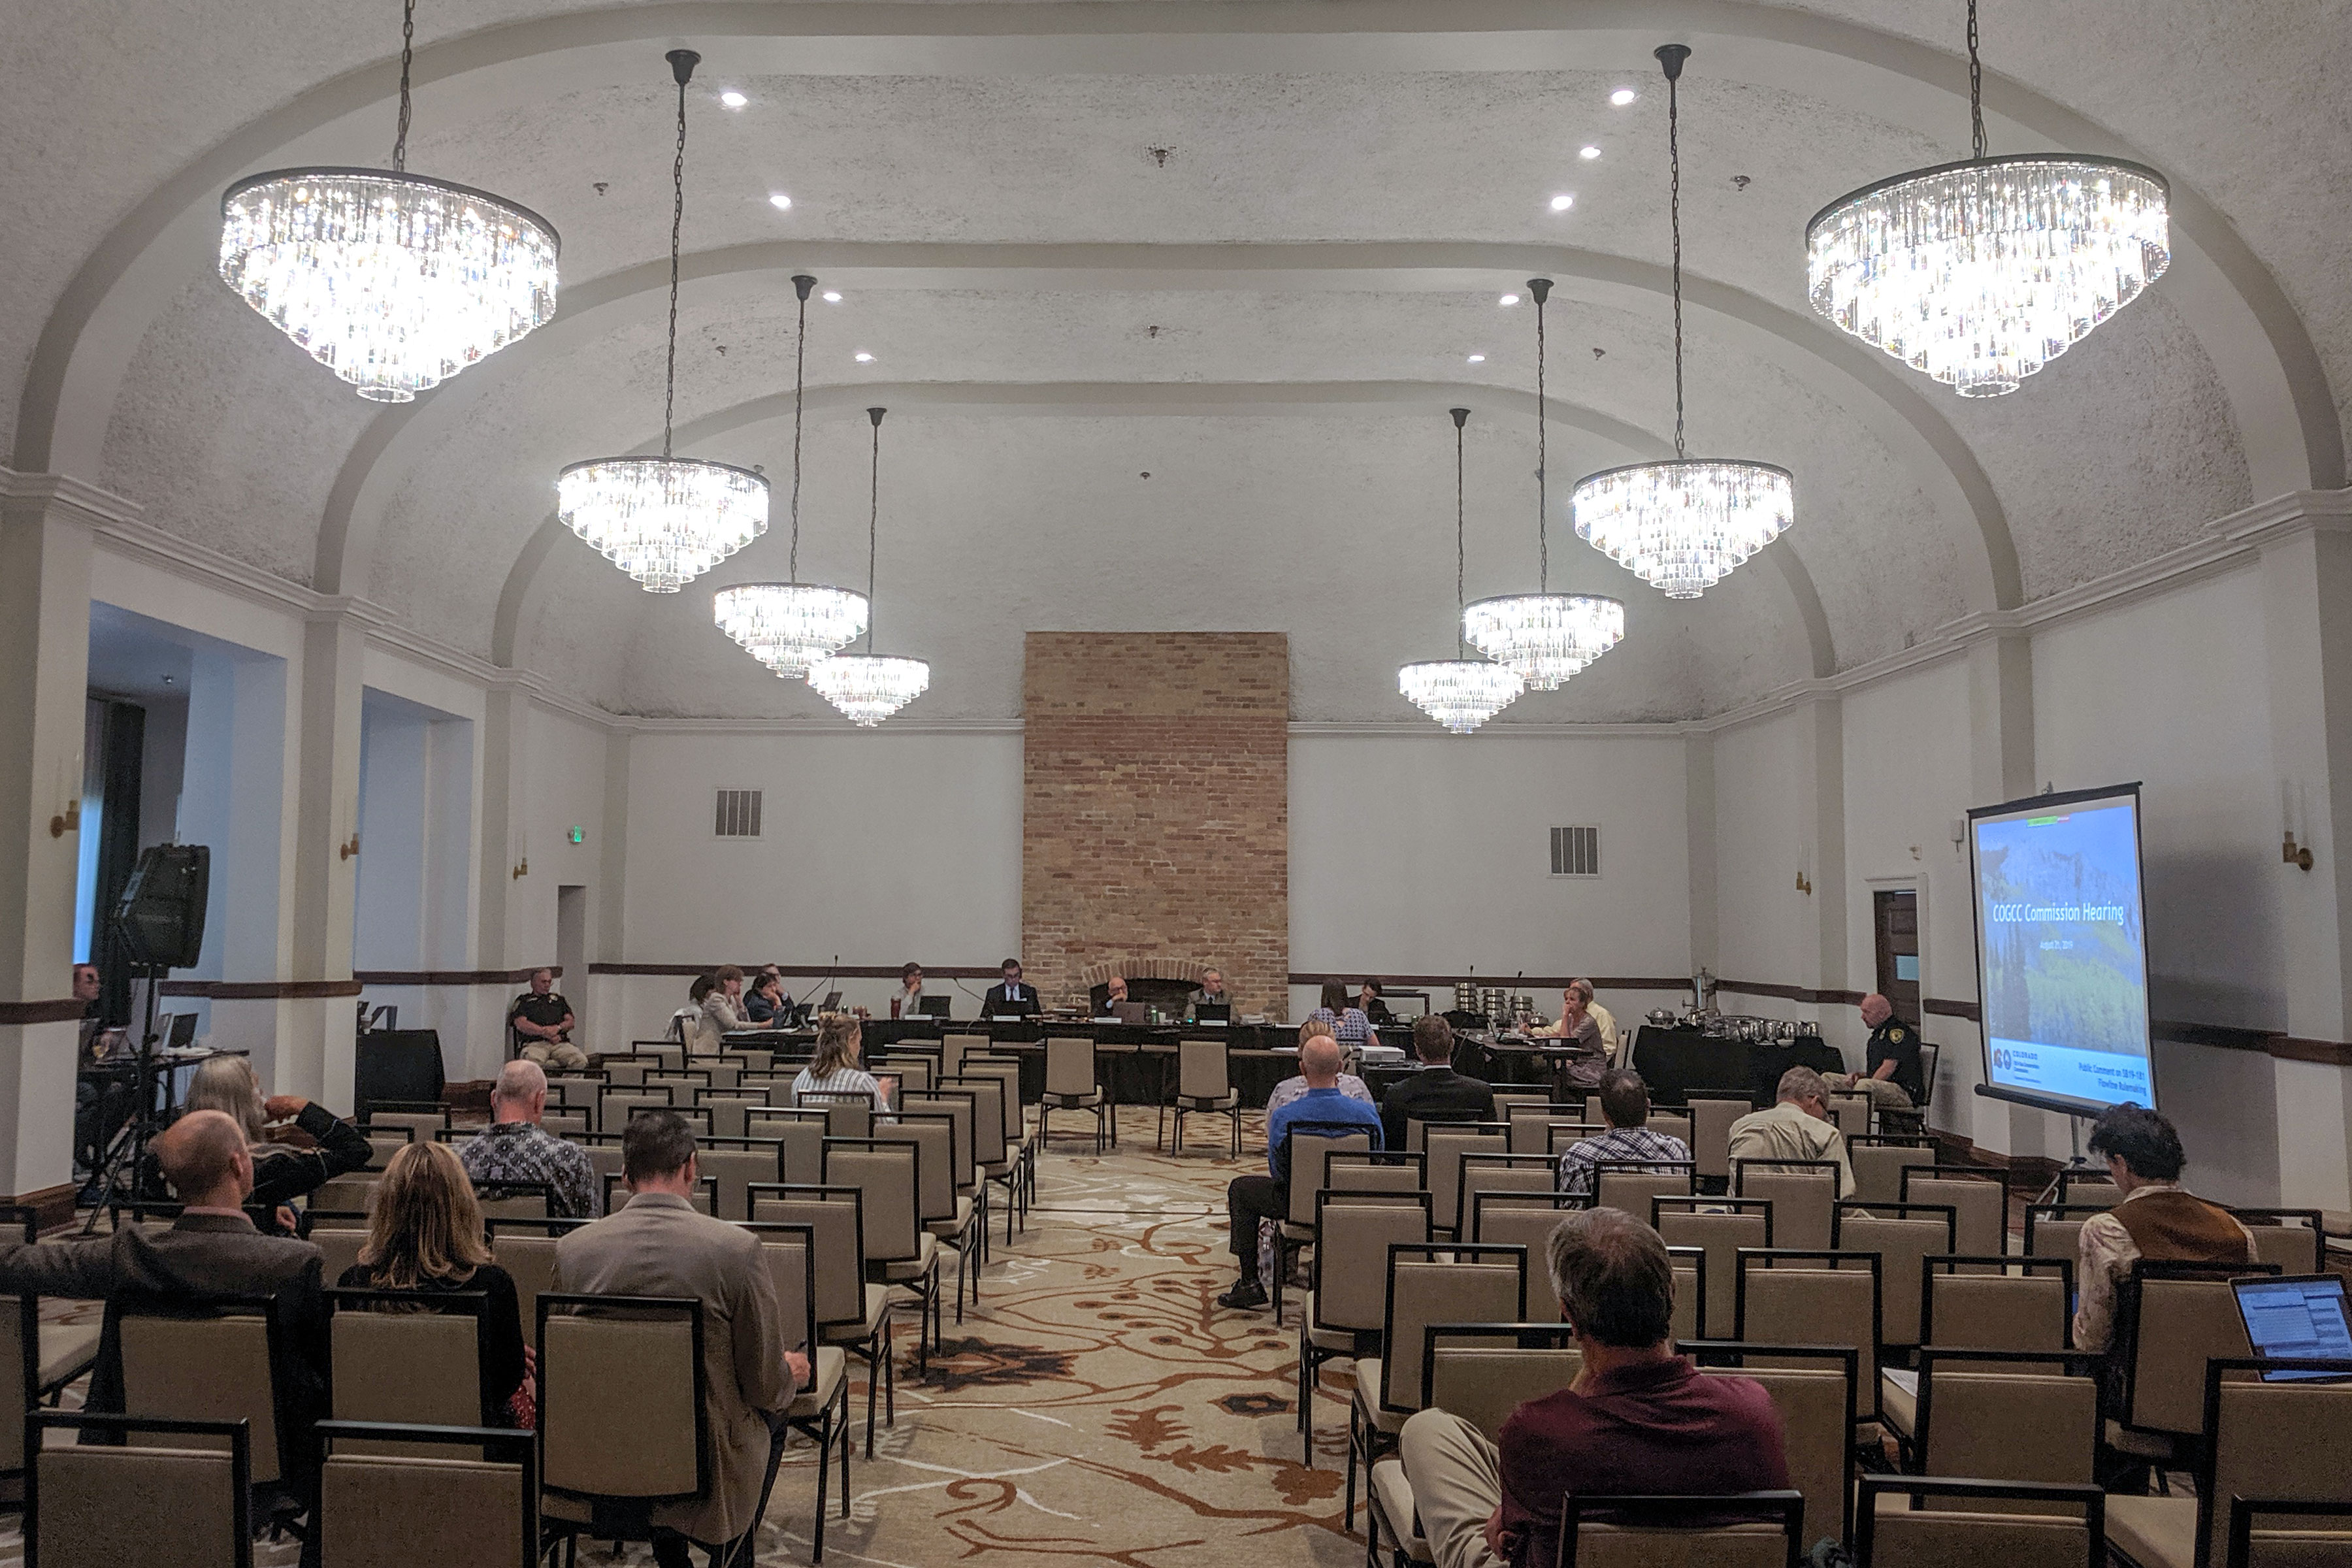 Colorado Oil and Gas Conservation Commission holds a meeting in Glenwood Springs, Colo., Aug. 21, 2019.